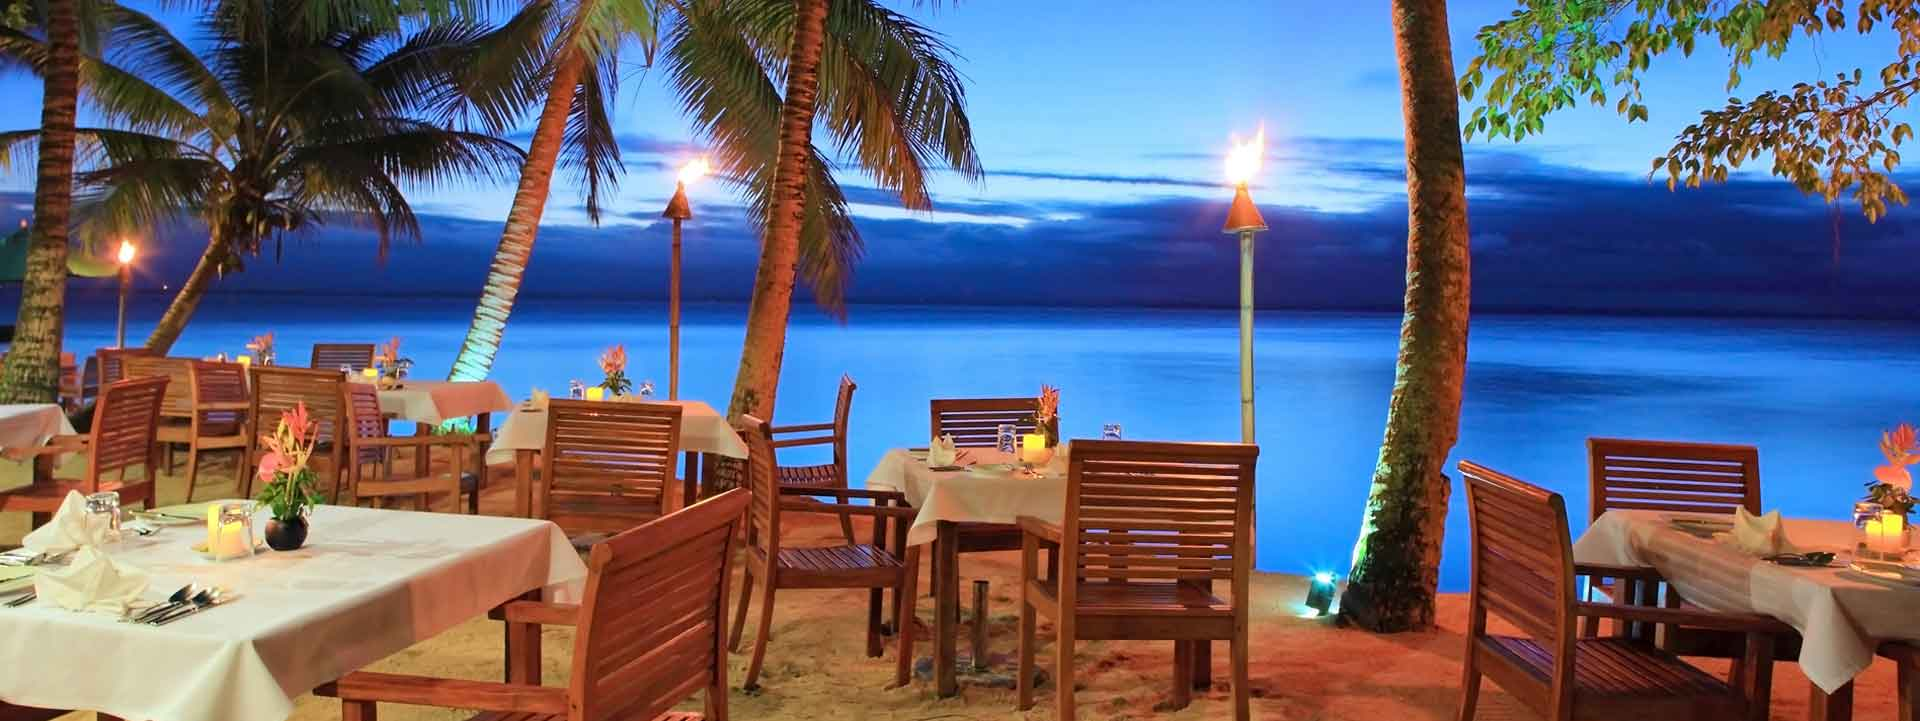 Daily Gourmet Dining Overlooking The Beach Toberua